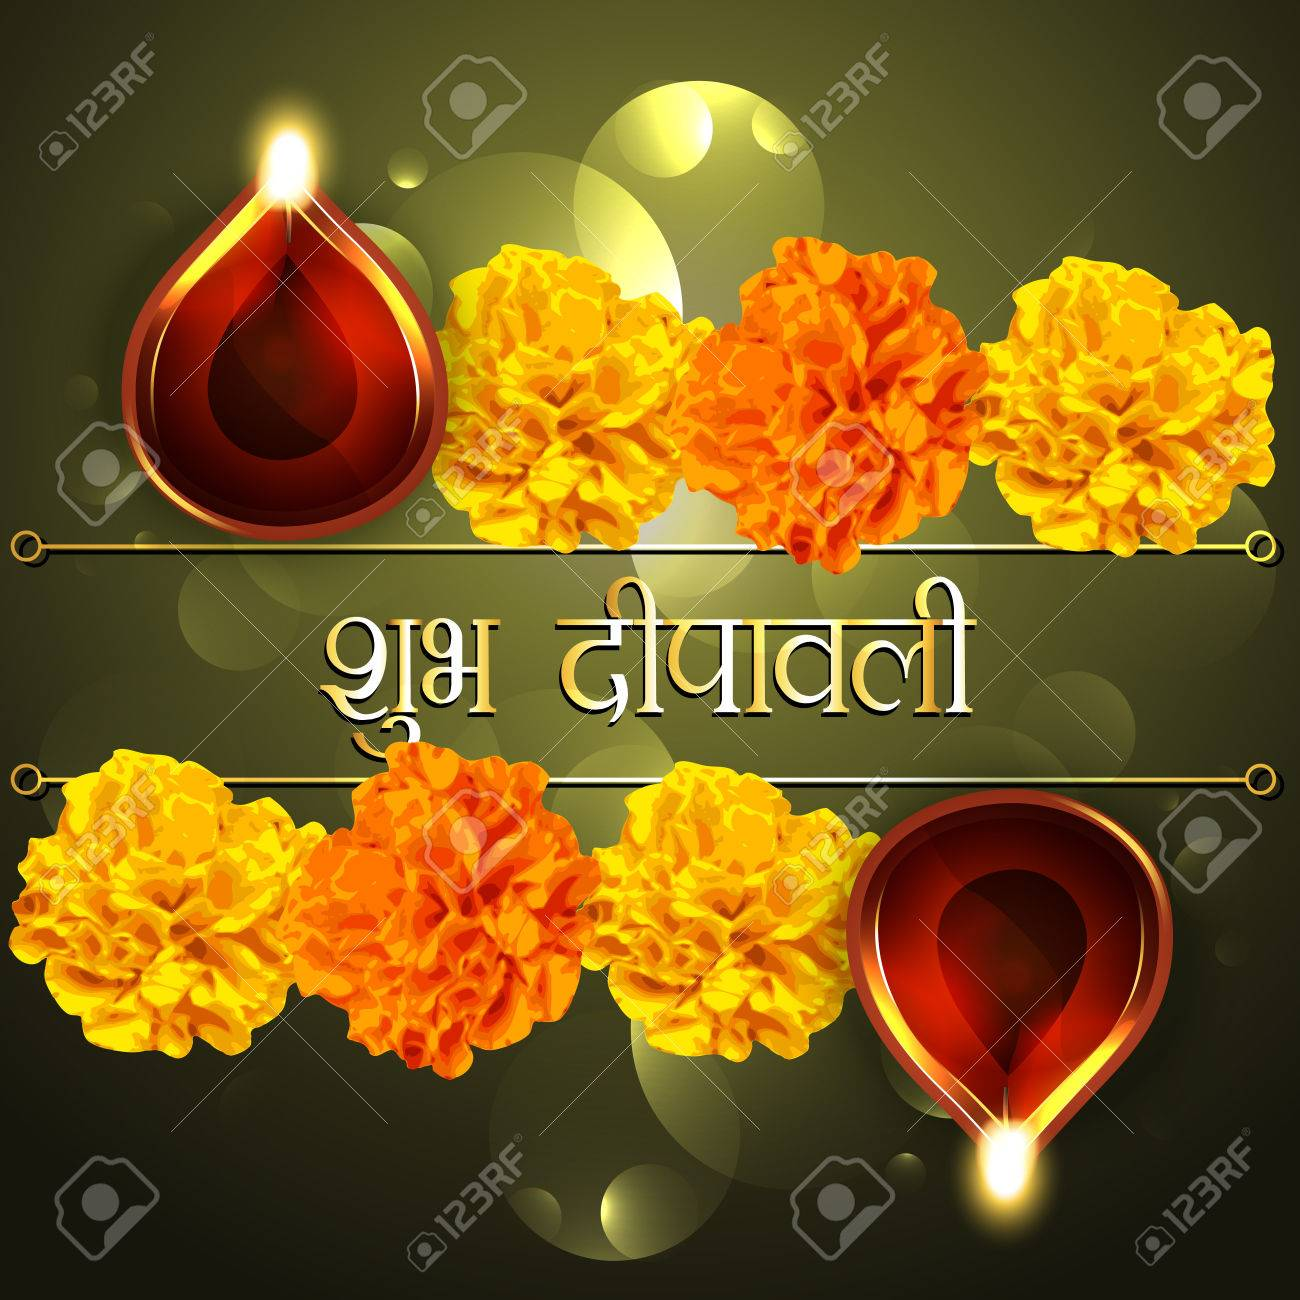 List of synonyms and antonyms of the word shubh diwali happy diwali 2017 whatsapp messages sms wishes images m4hsunfo